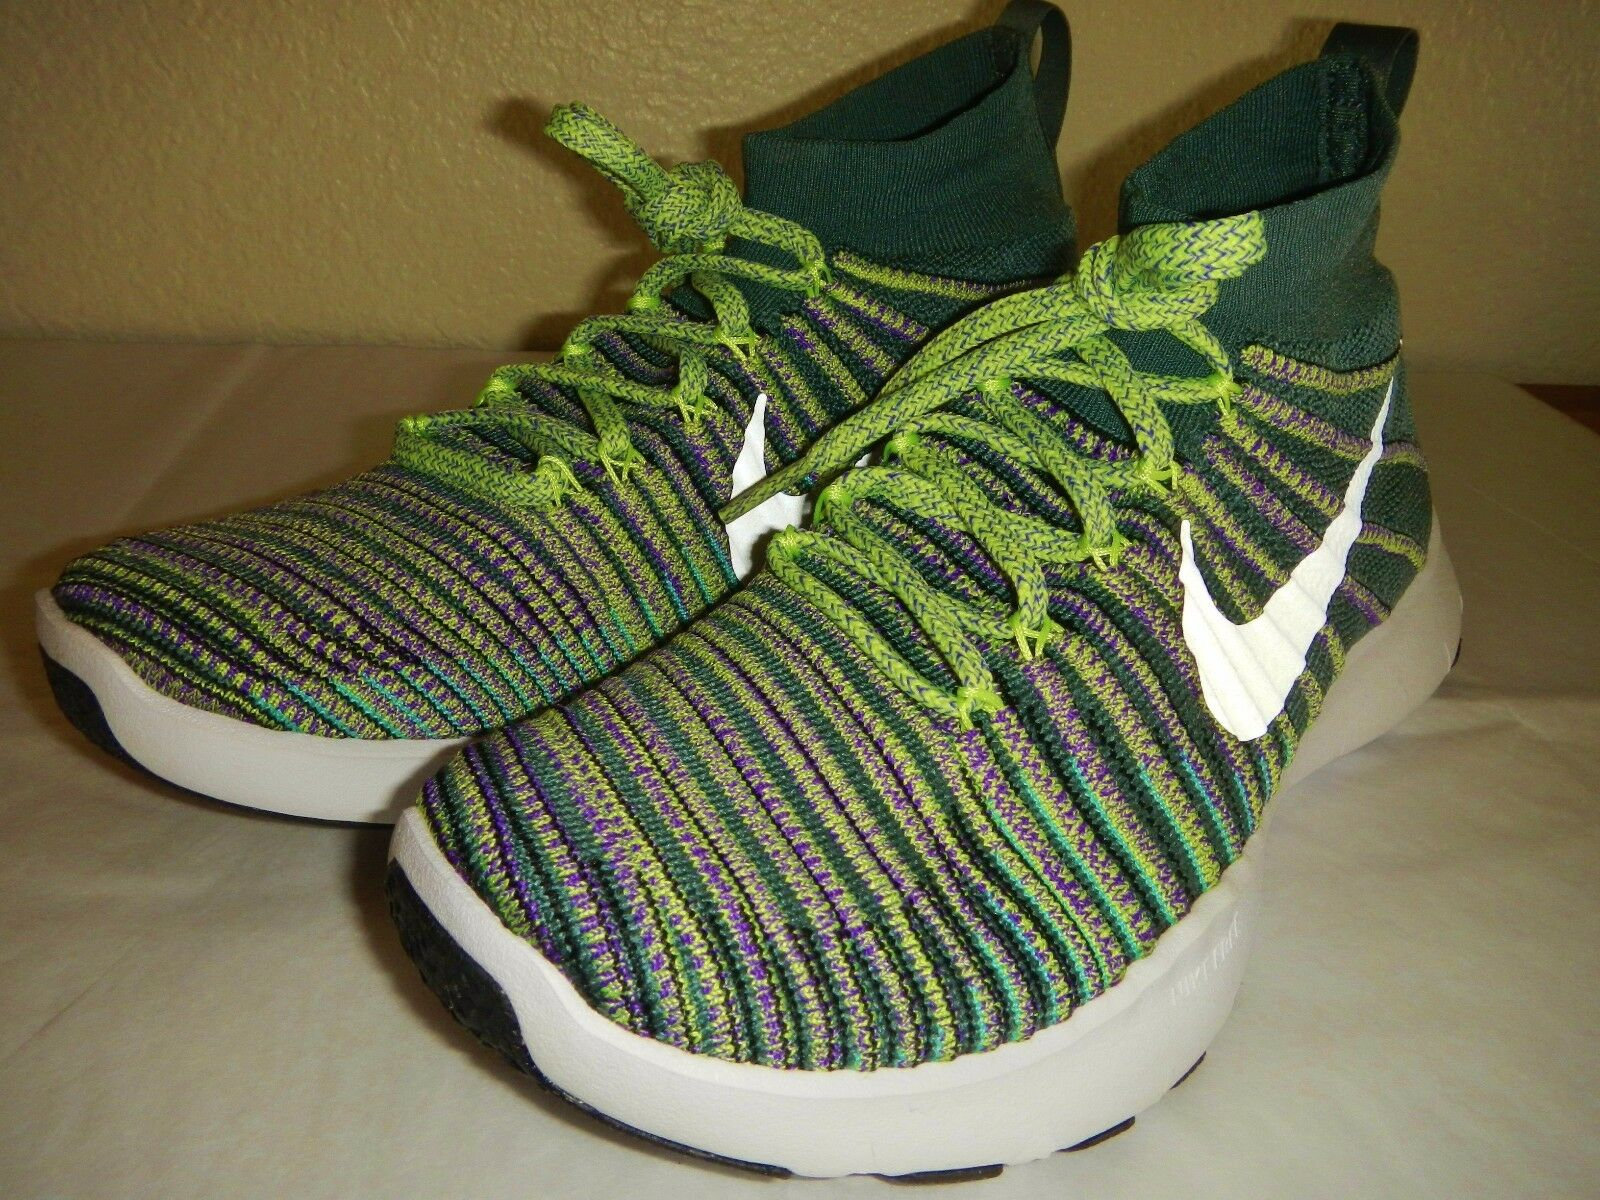 NIKE FREE TRAIN FORCE FLYKNIT SHOES, STYLE 833275 300 , SIZE 7, NWB